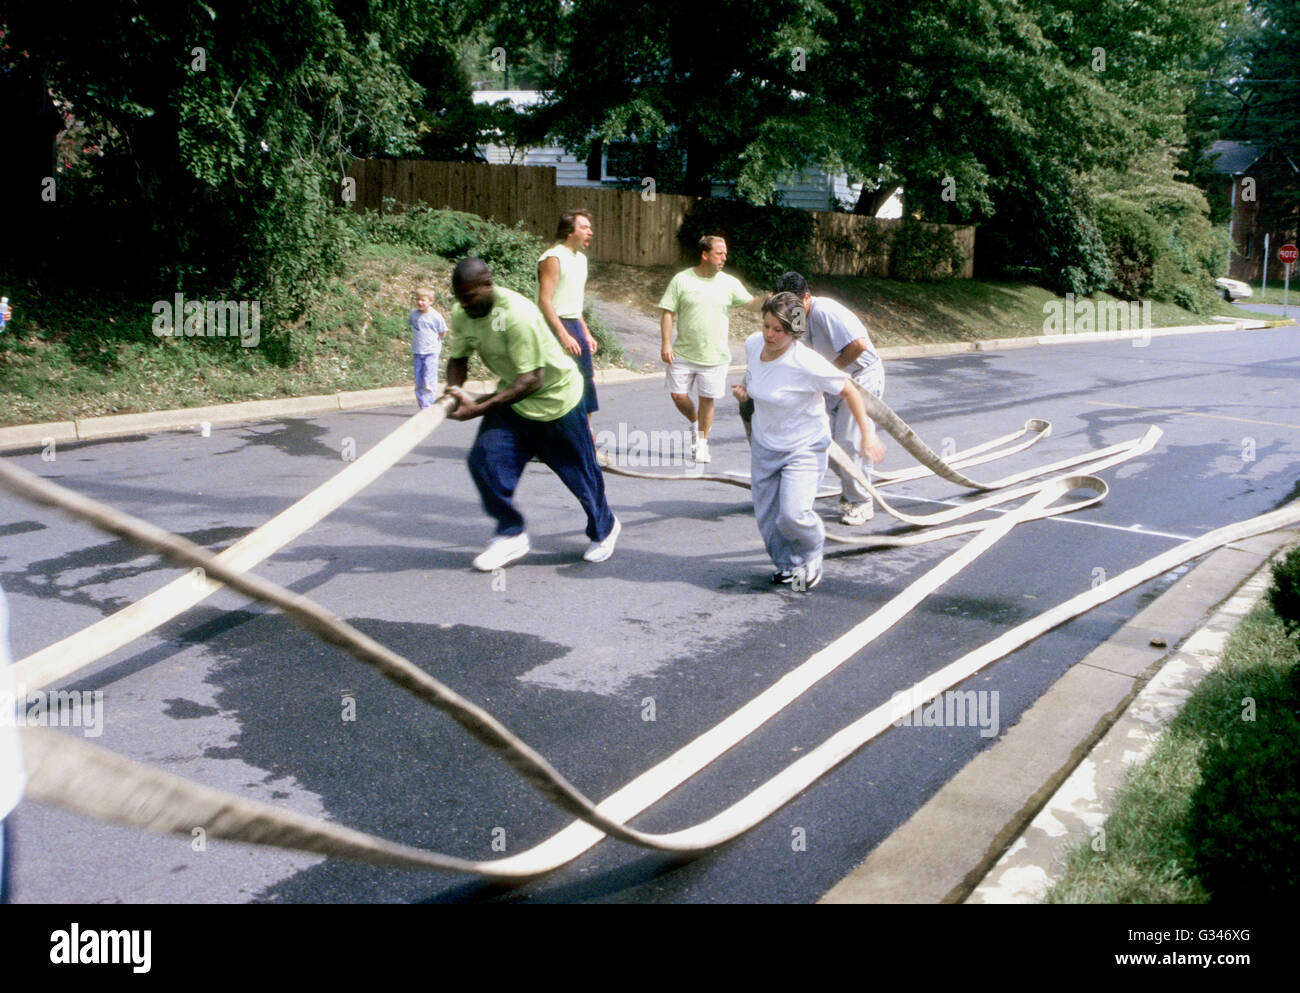 volunteer firefighters drag hoses during cleanup after a fire - Stock Image